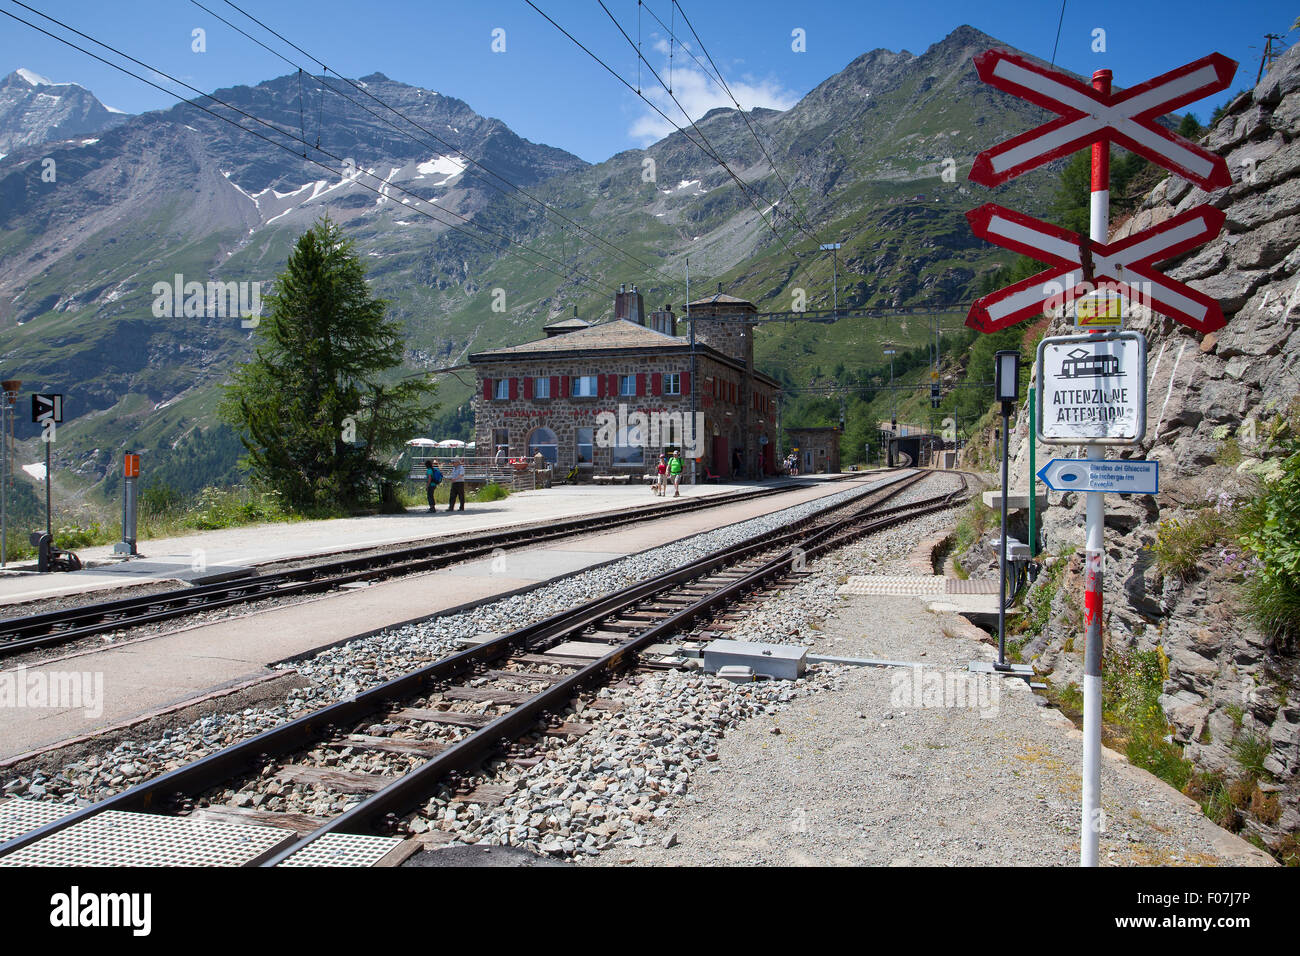 Alp Grum, Switzerland - July 7,2015: Alp Grum railway station is situated on the Bernina Railway, between Pontresina, - Stock Image